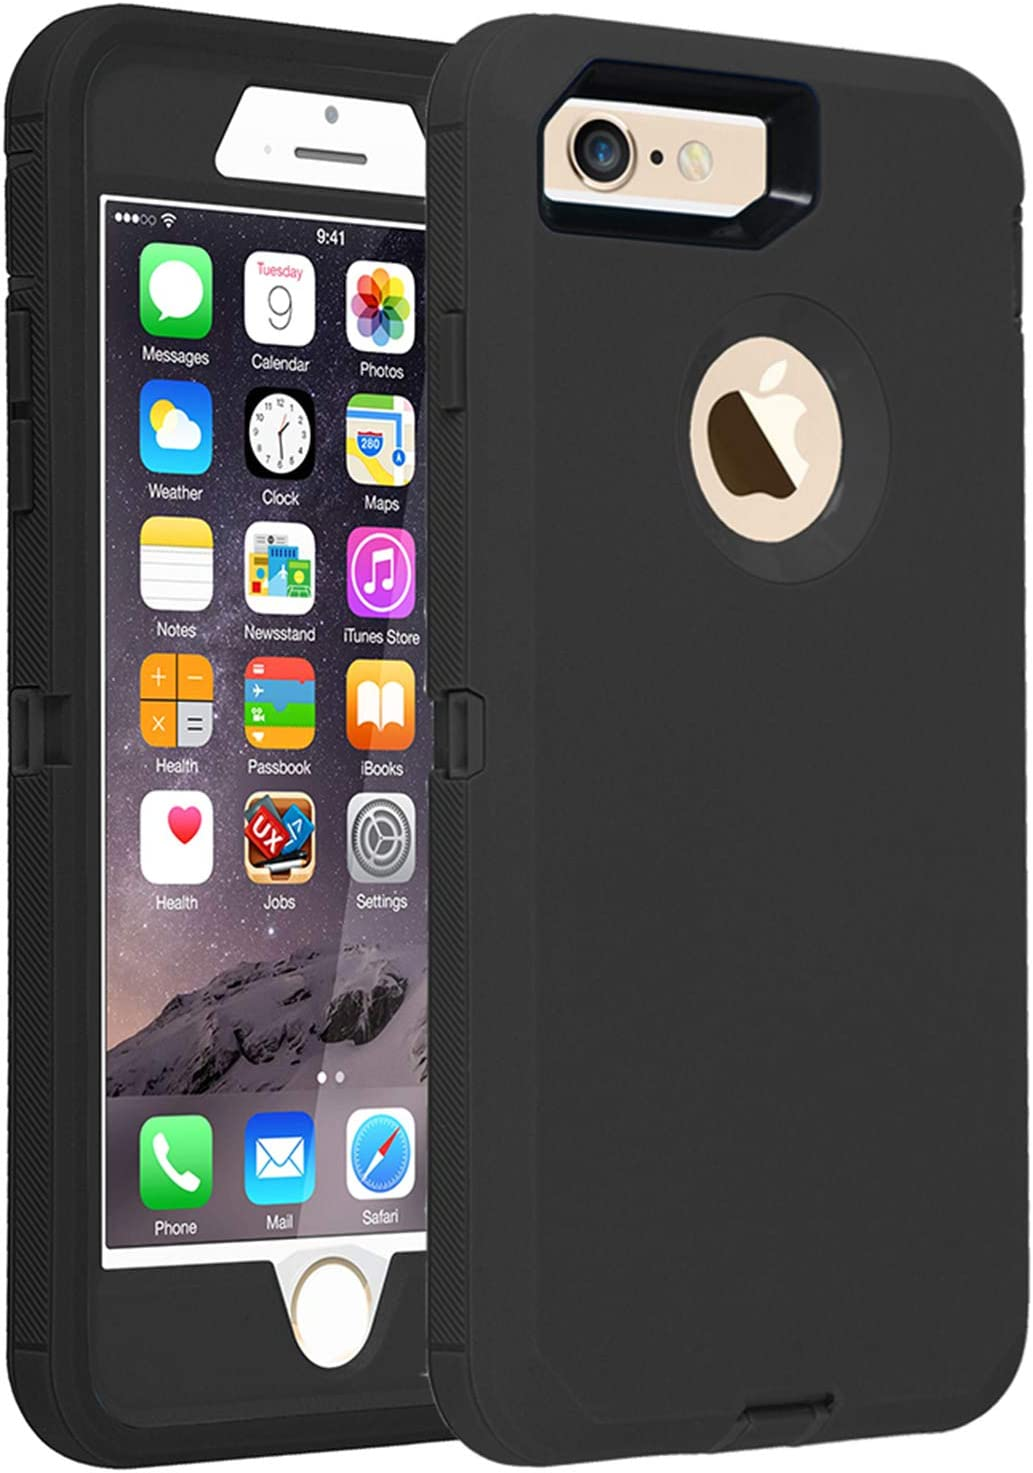 Co-Goldguard Case for iPhone 7 Heavy Duty iPhone 8 Cover Durable 3 in 1 Built-in Screen Protector Hard Cover Dust-Proof Shockproof Drop-Proof Shell (Black)